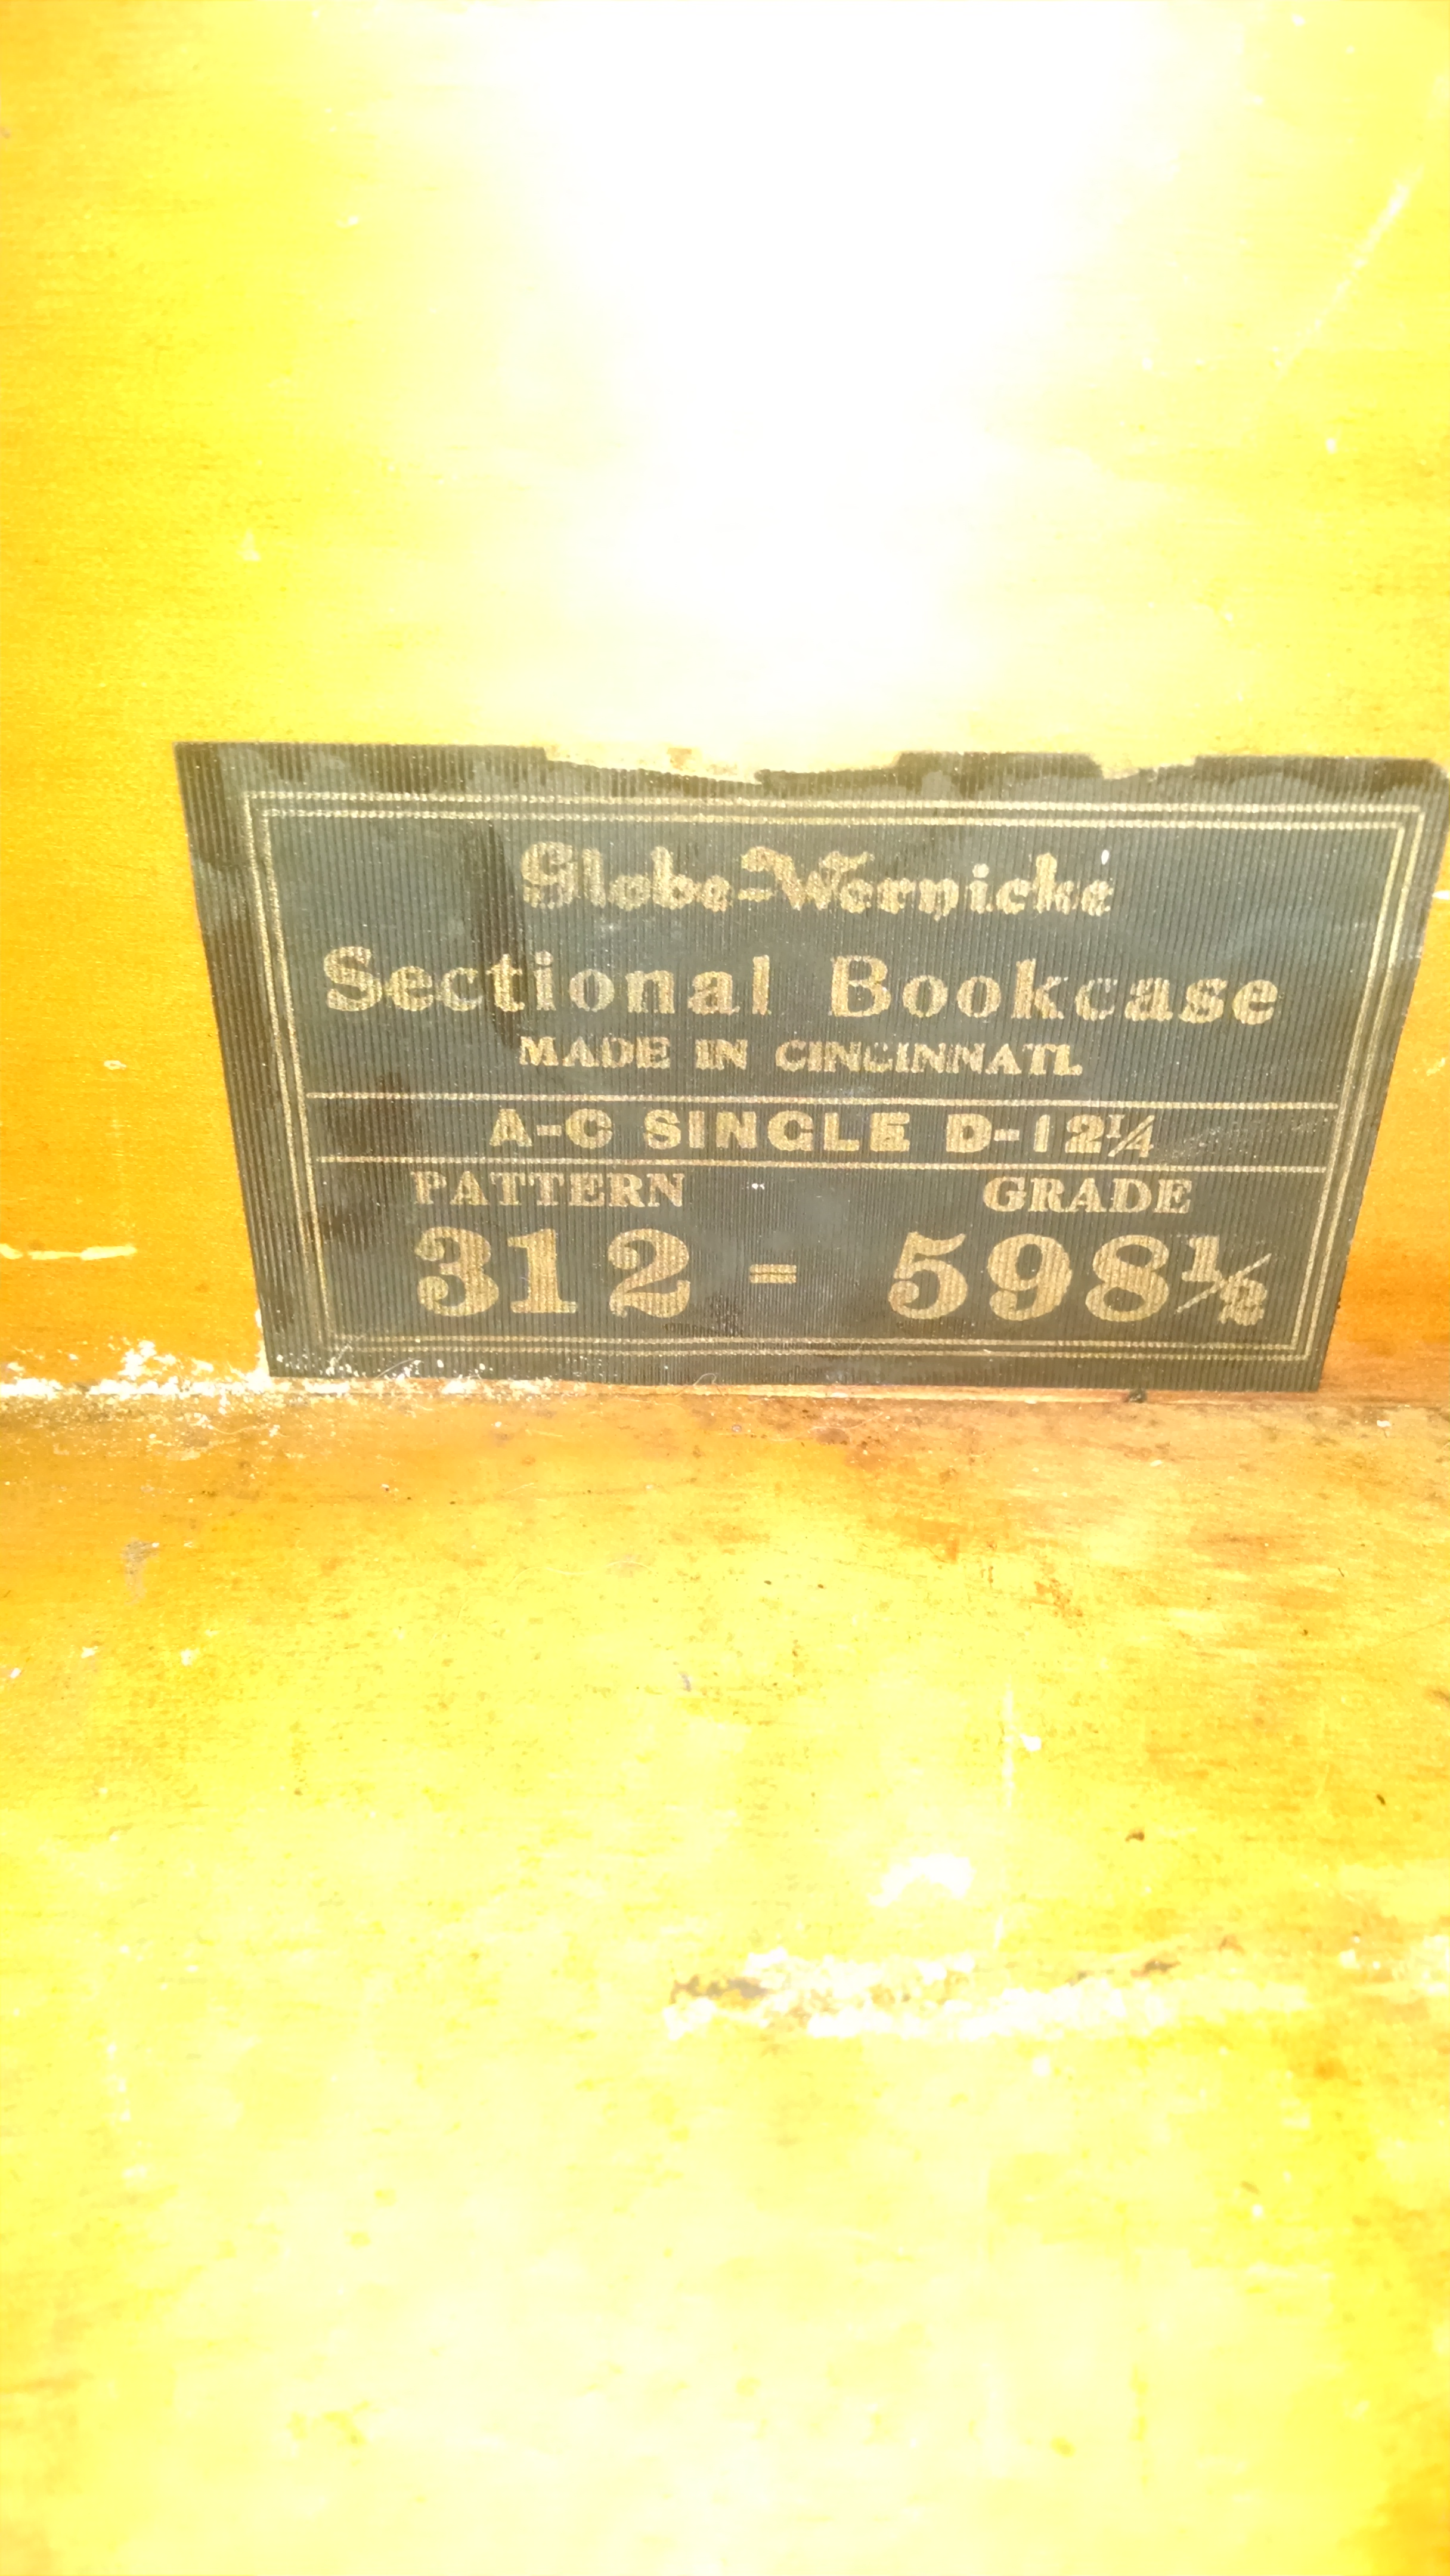 I Need To Know The Value Of A Barrister 3 Shelf Bookcase It Has A Label Reading Grade 598 1 2